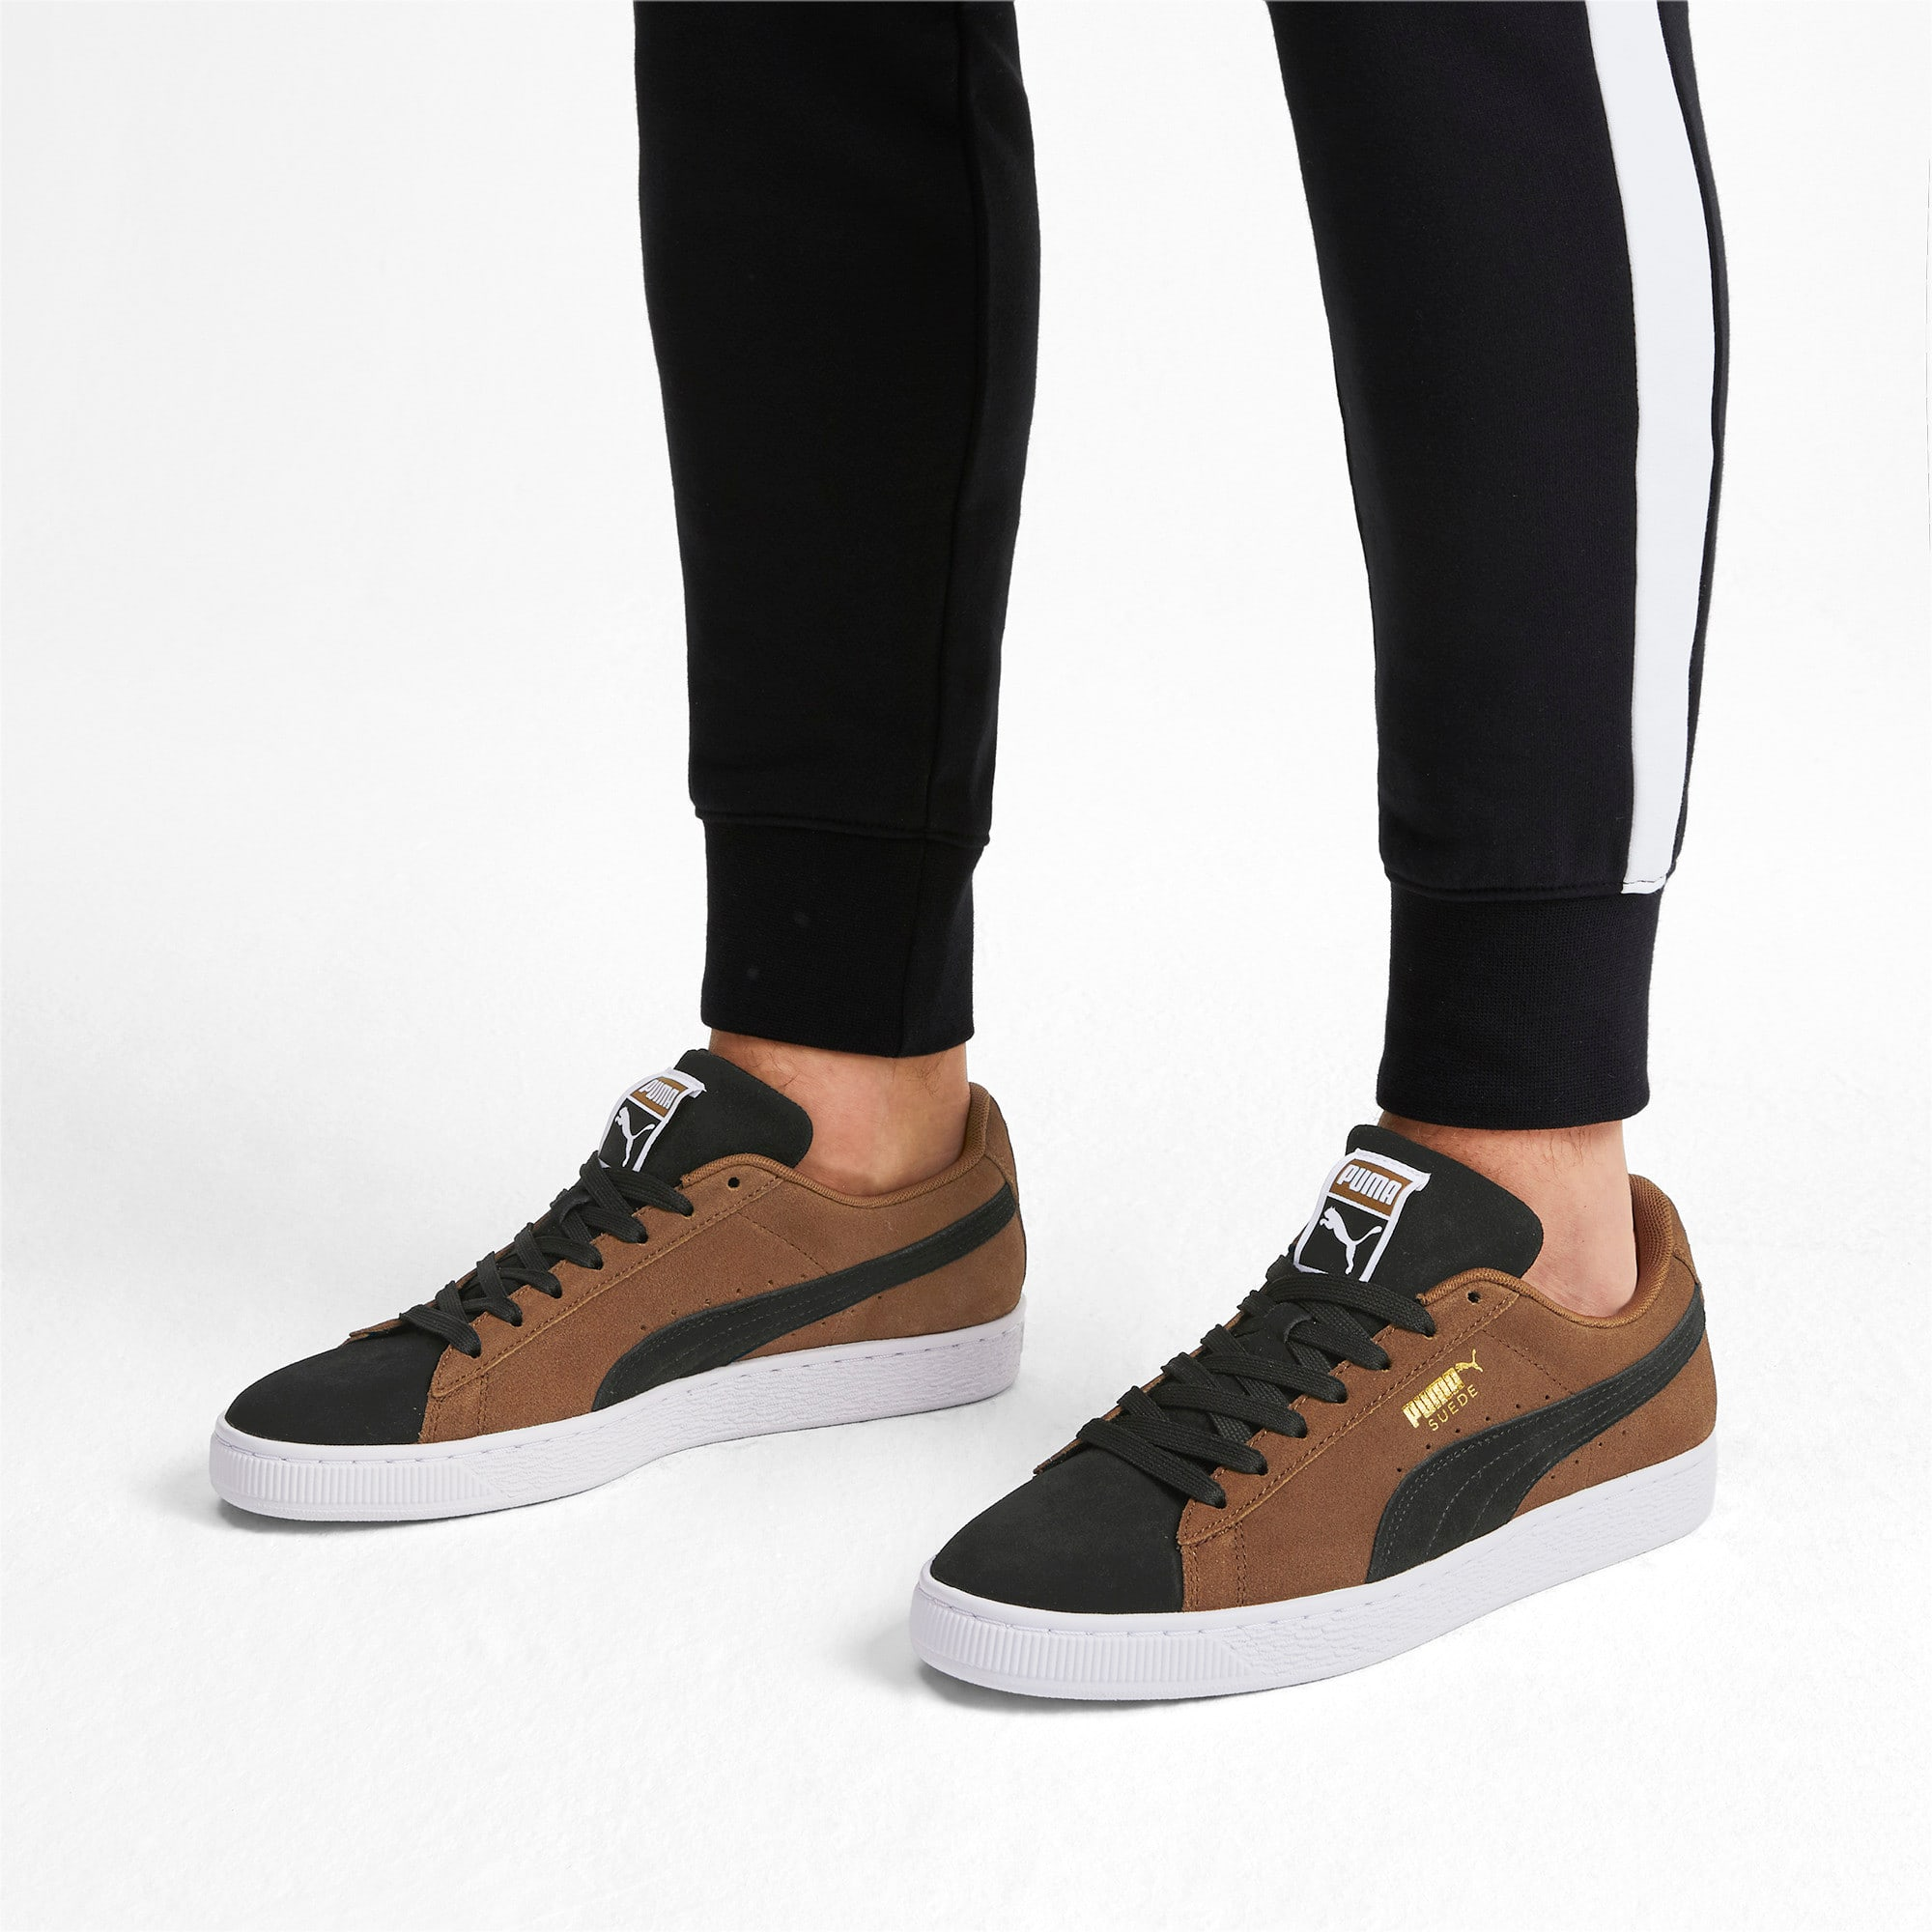 Thumbnail 2 of Suede Classic Sneakers, Dachsund-Puma Black-P Wht, medium